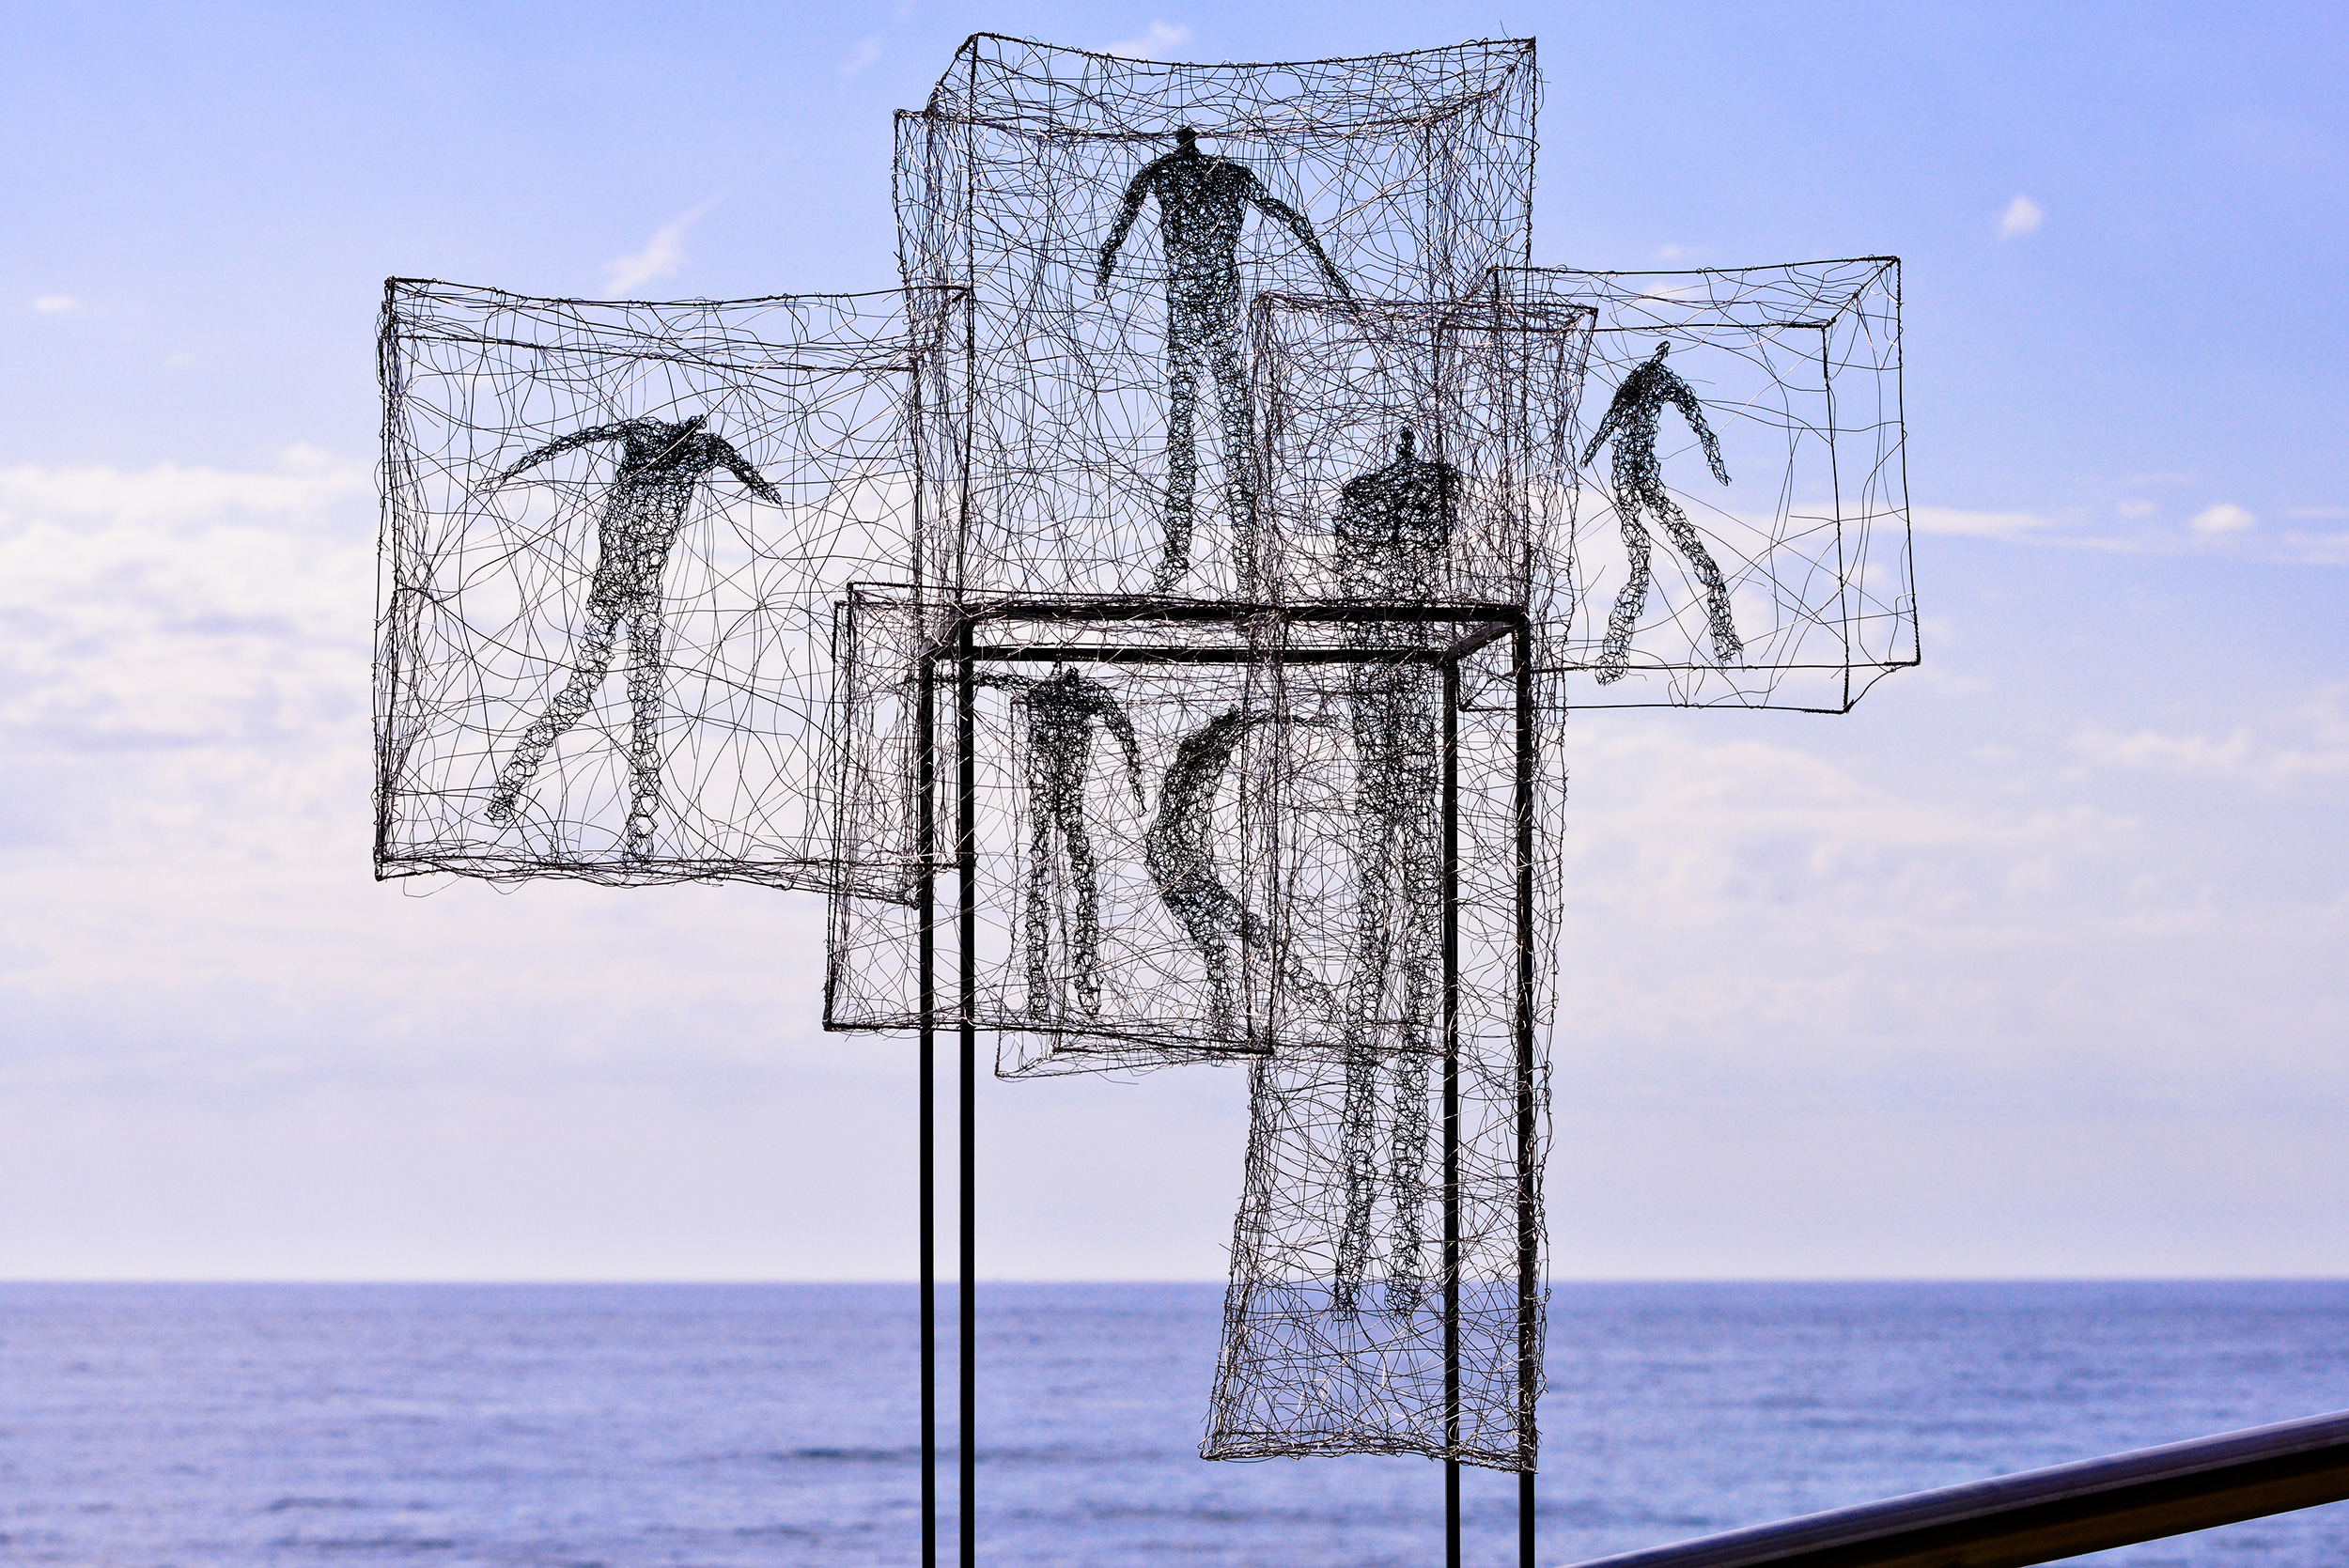 Barbara Licha, Listen time passes, Sculpture by the Sea, Bondi 2015. Photo Clyde Yee